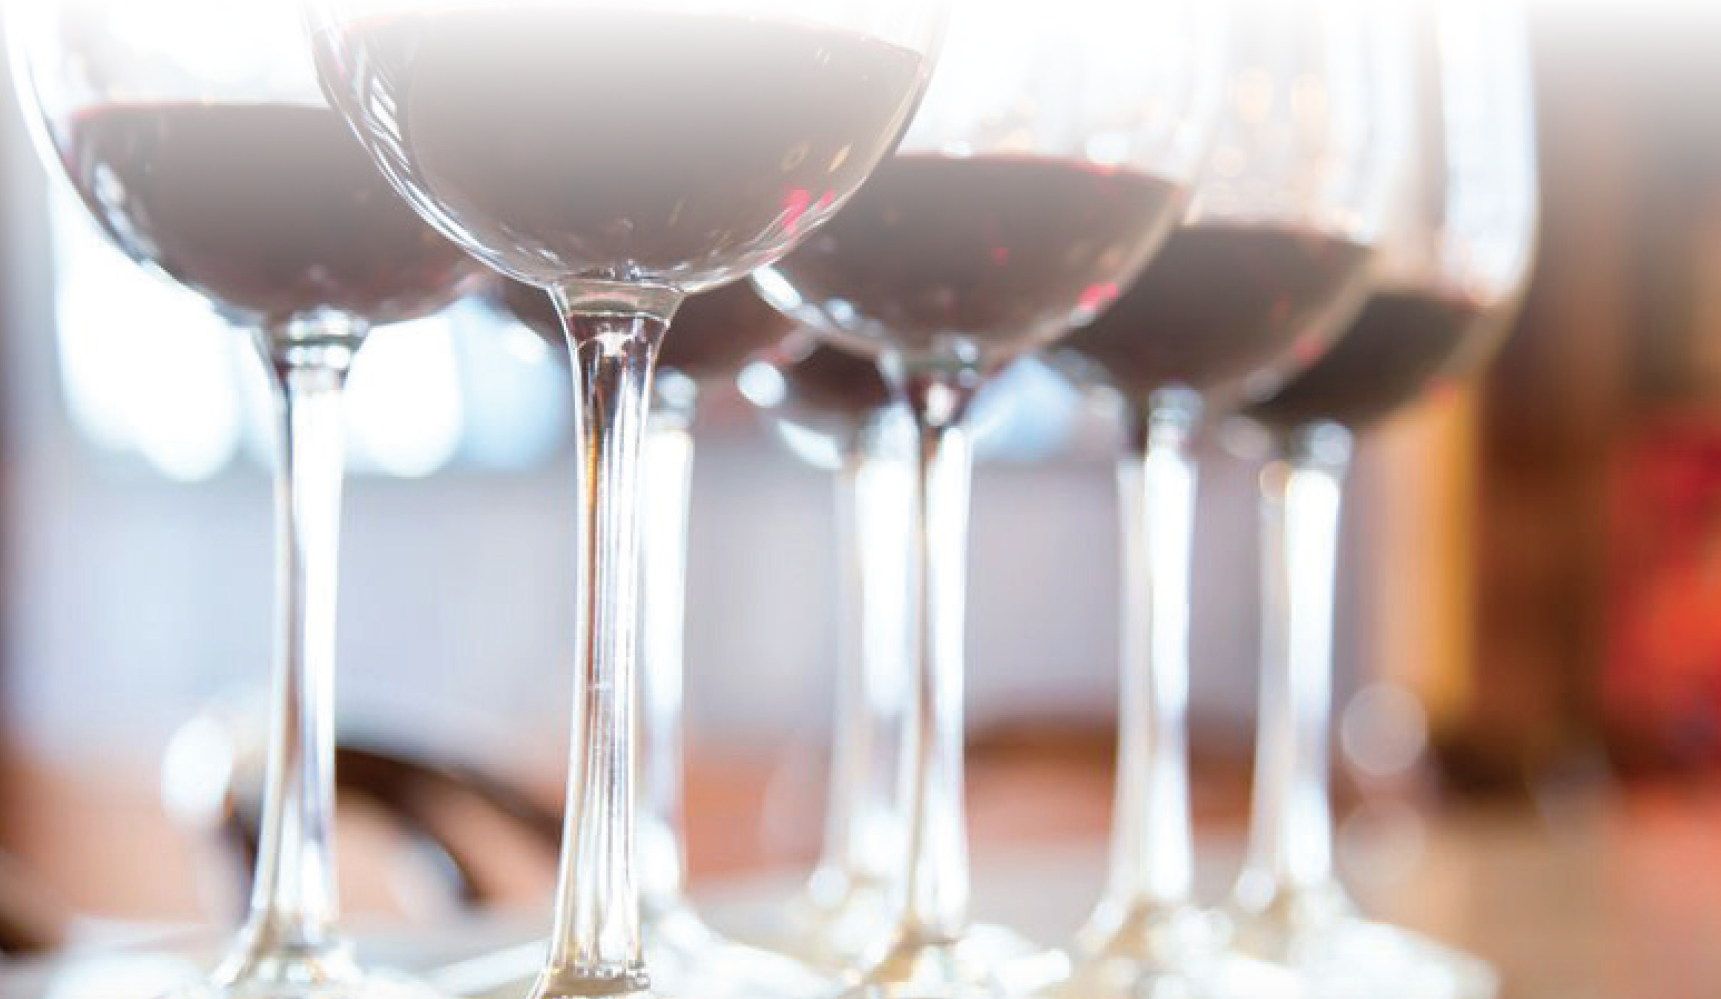 Water Street Cafe host Black Hills Wines Tuesday, May 28